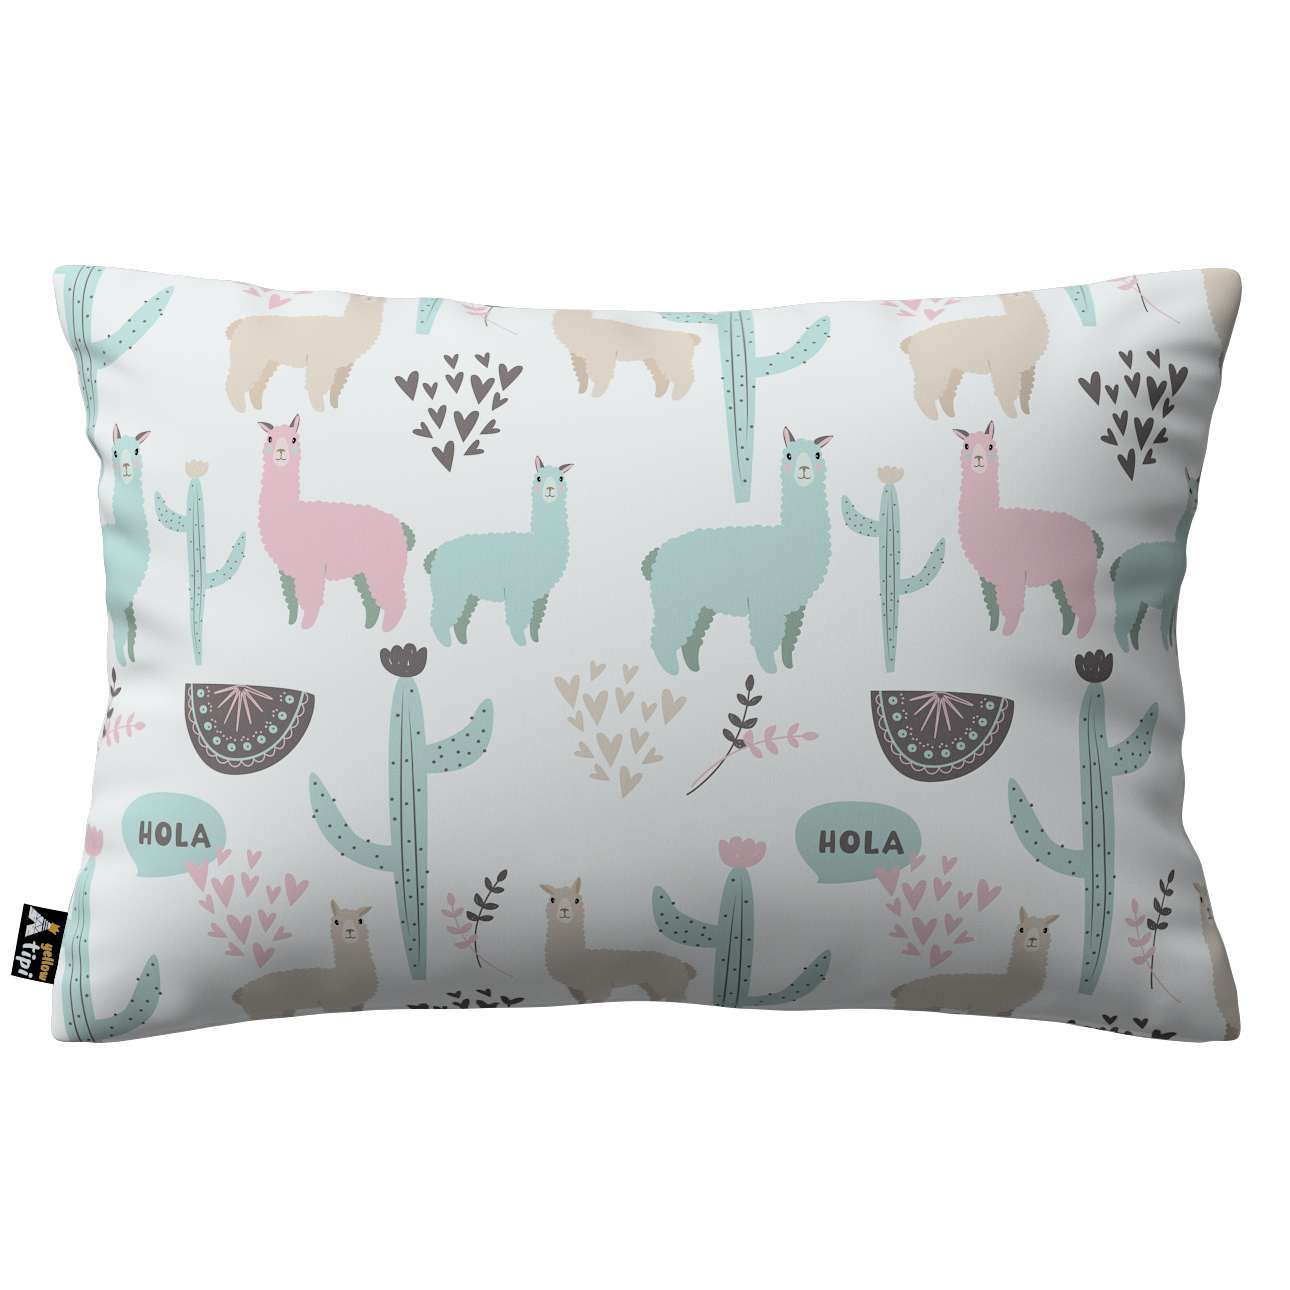 Milly rectangular cushion cover in collection Magic Collection, fabric: 500-01